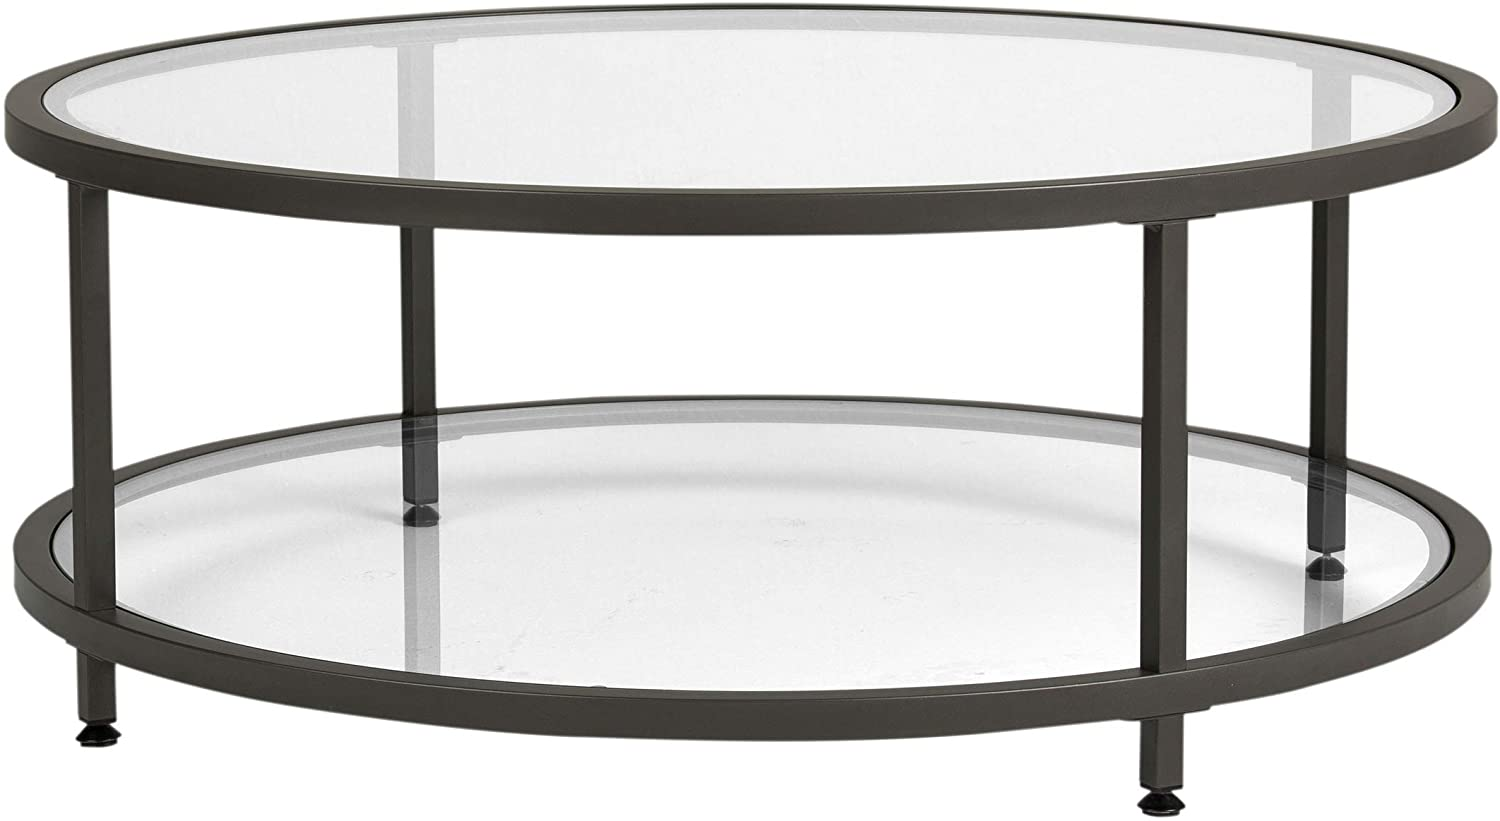 Amazon Com Studio Designs Home Camber Round Glass Coffee Table In Pewter With Clear Glass Living Room Coffee Table 71003 Furniture Decor